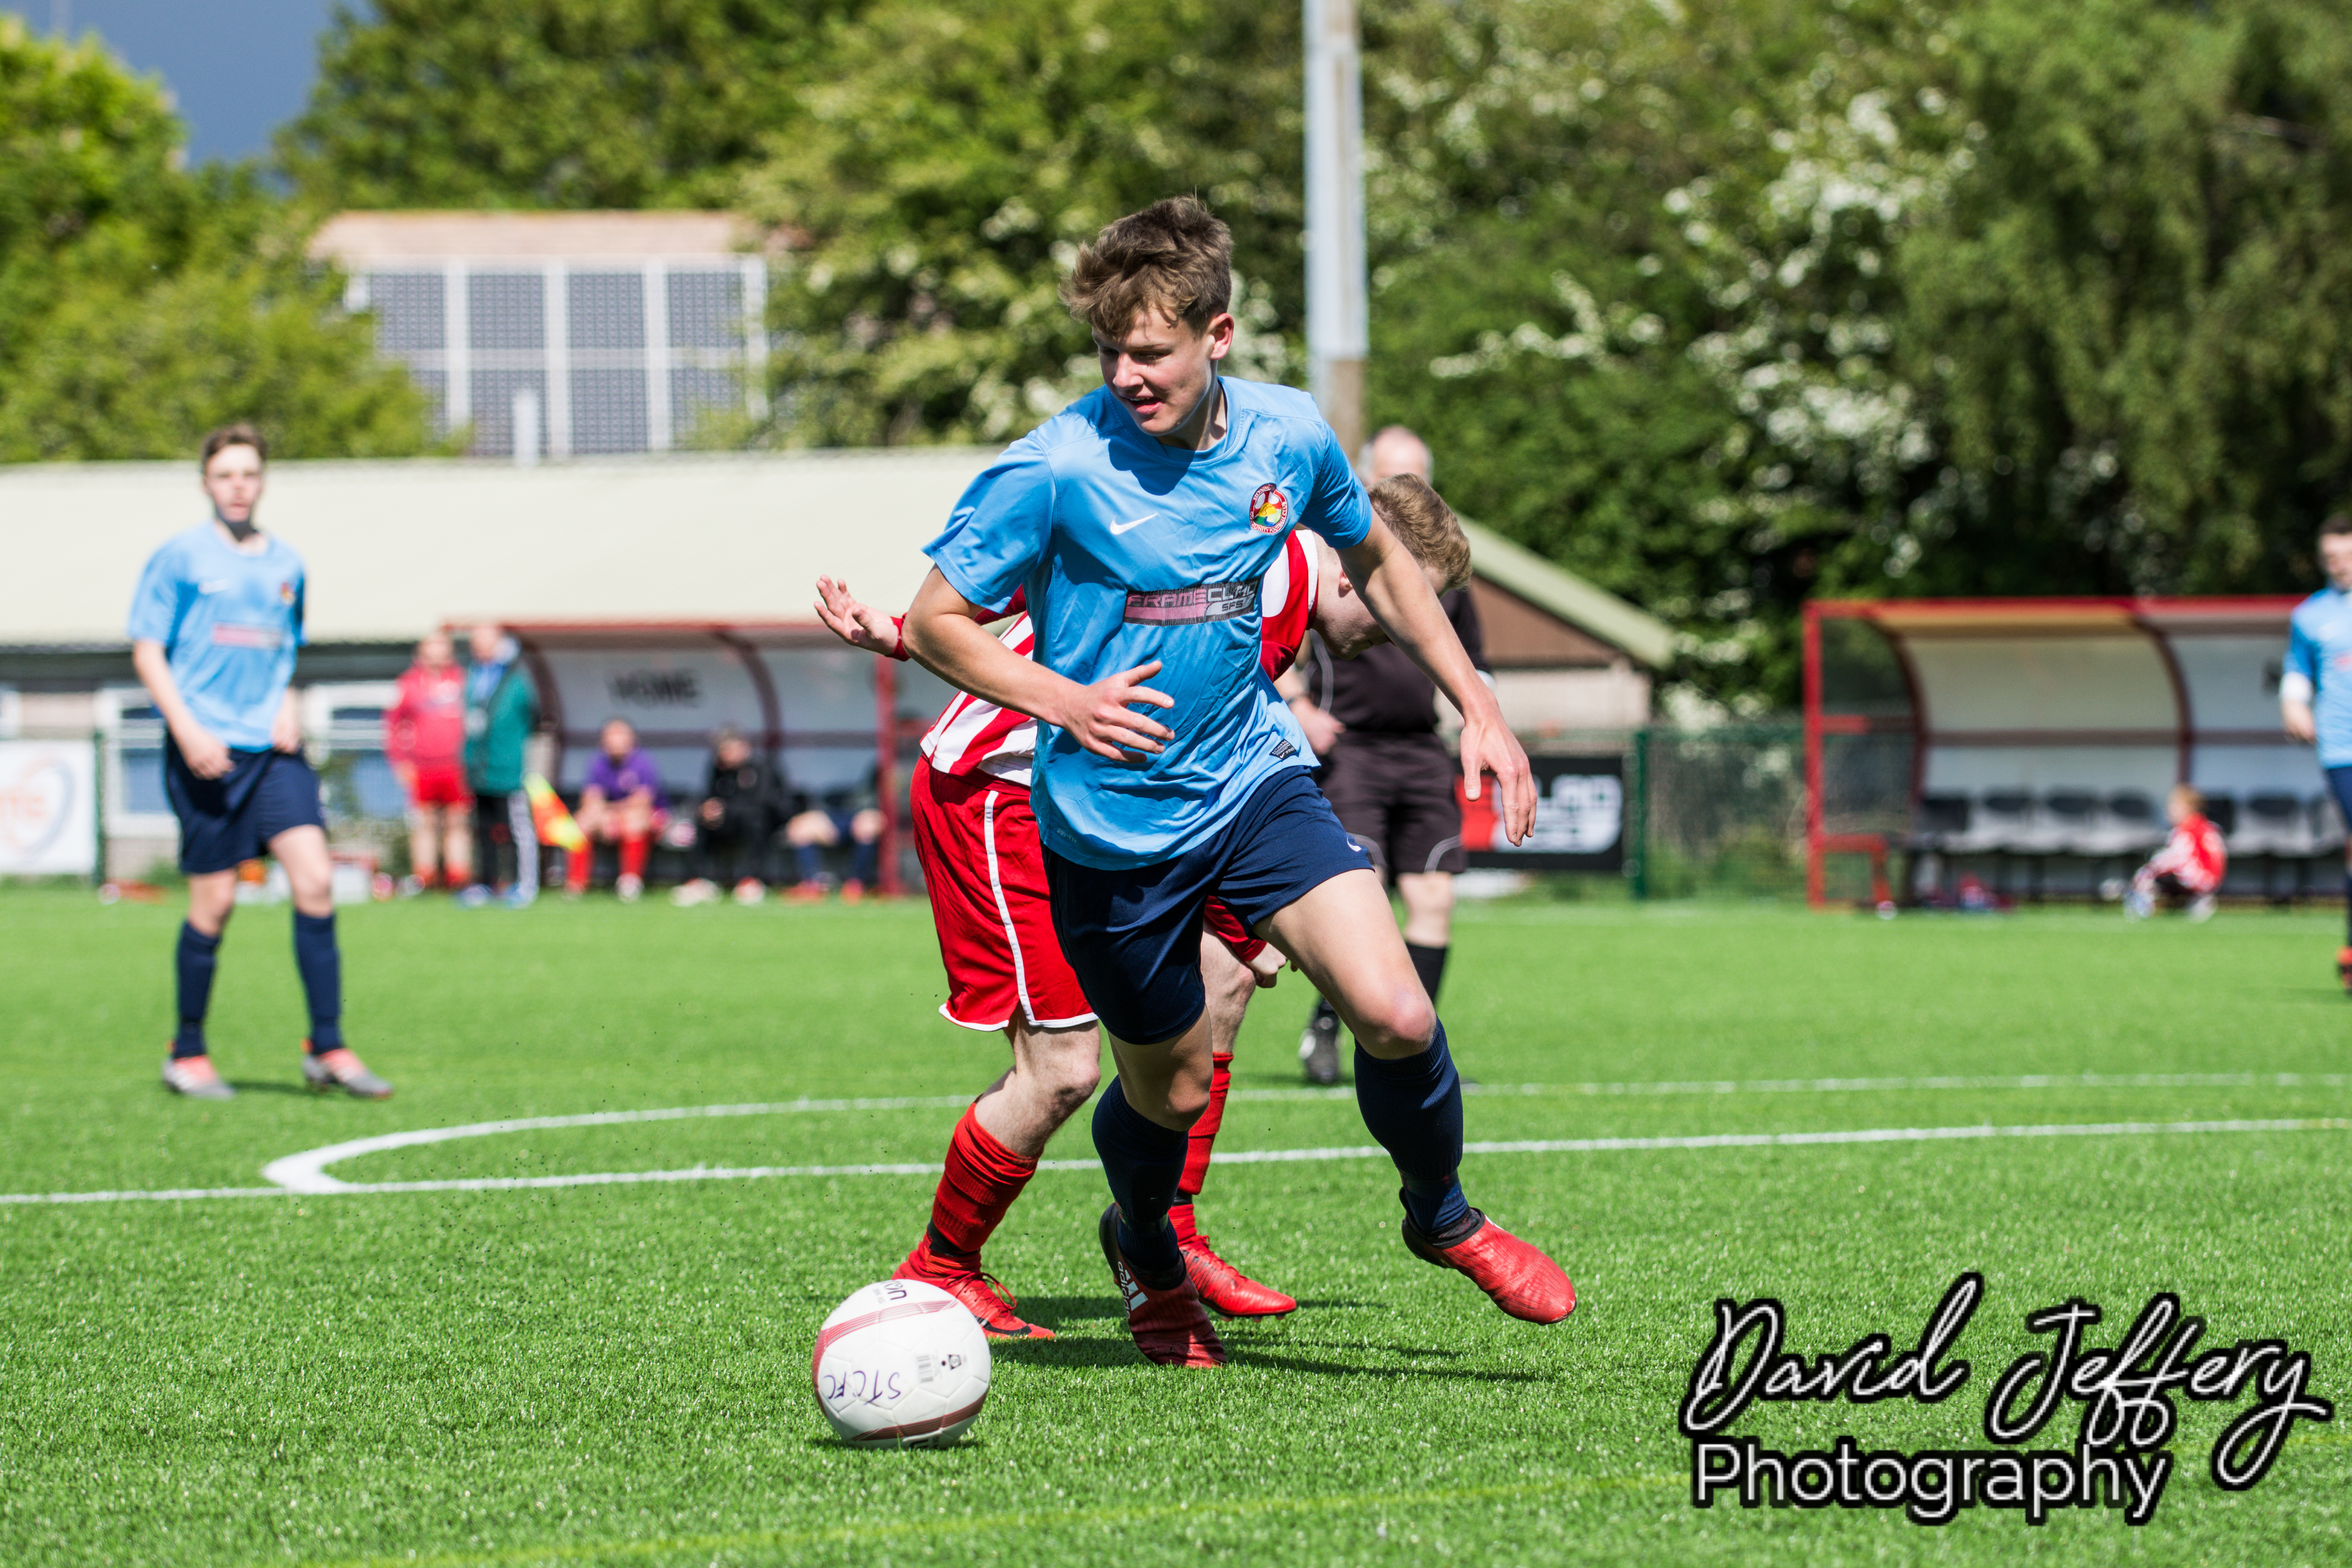 044 Steyning Res Friendly 04.05